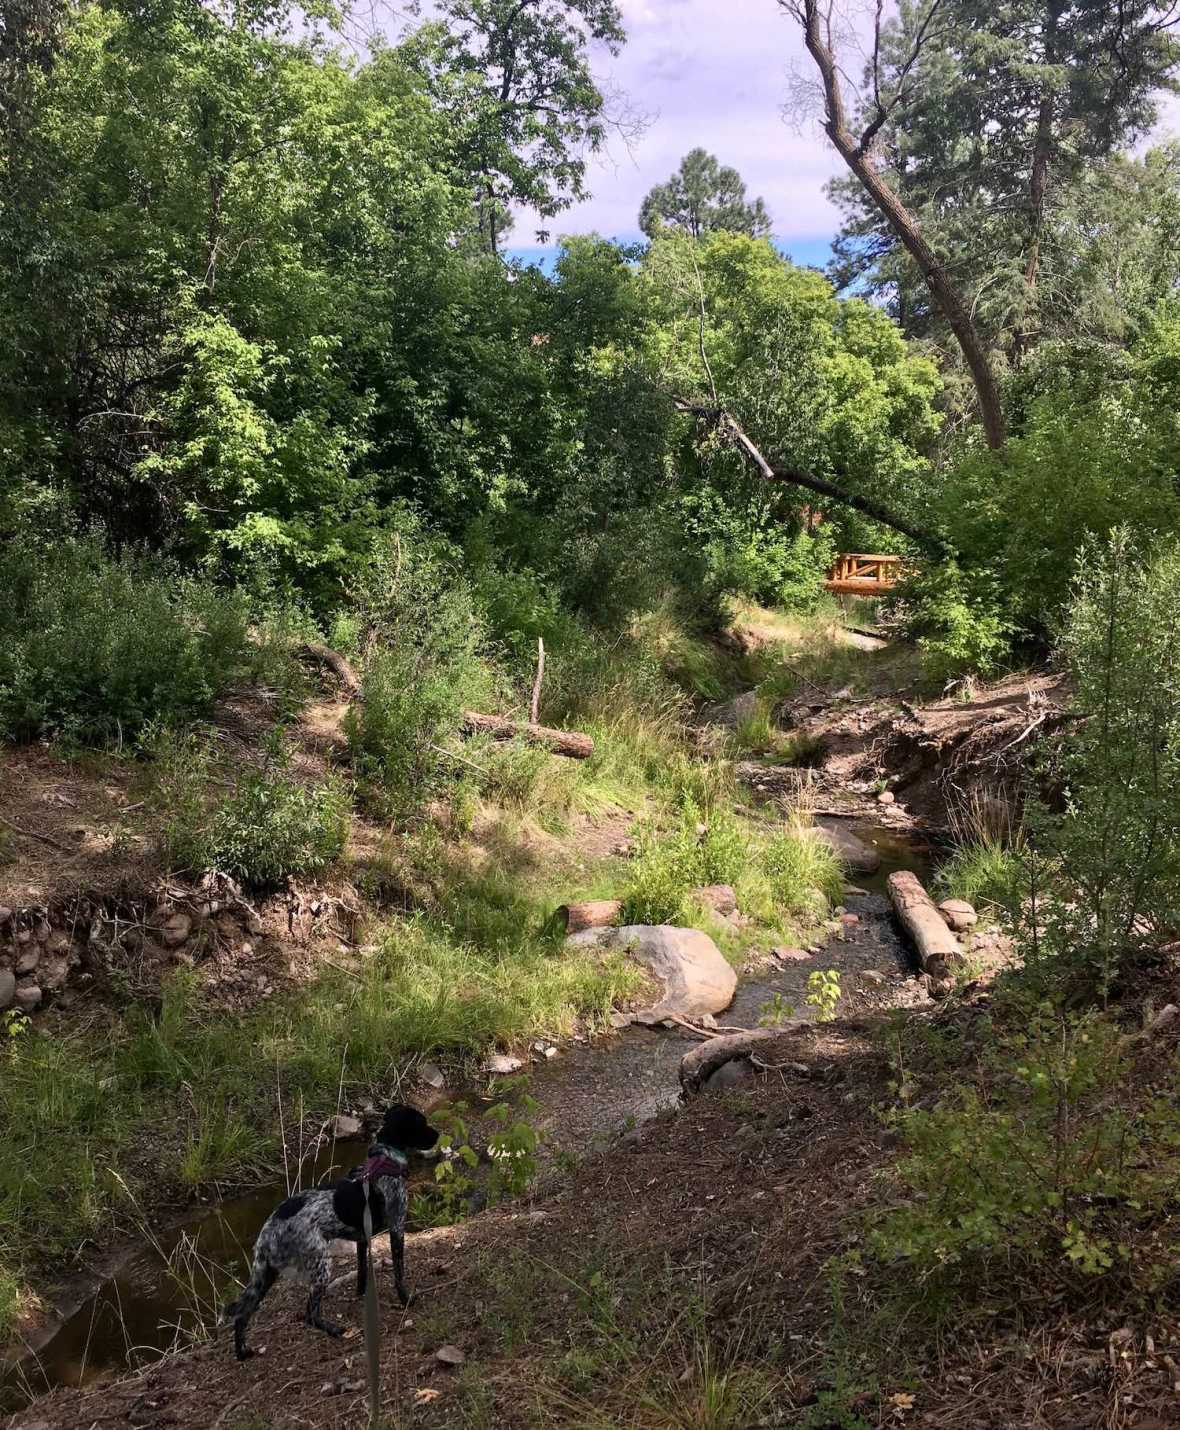 Frijoles creek beside the Cottonwood picnic area in Bandelier National Monument